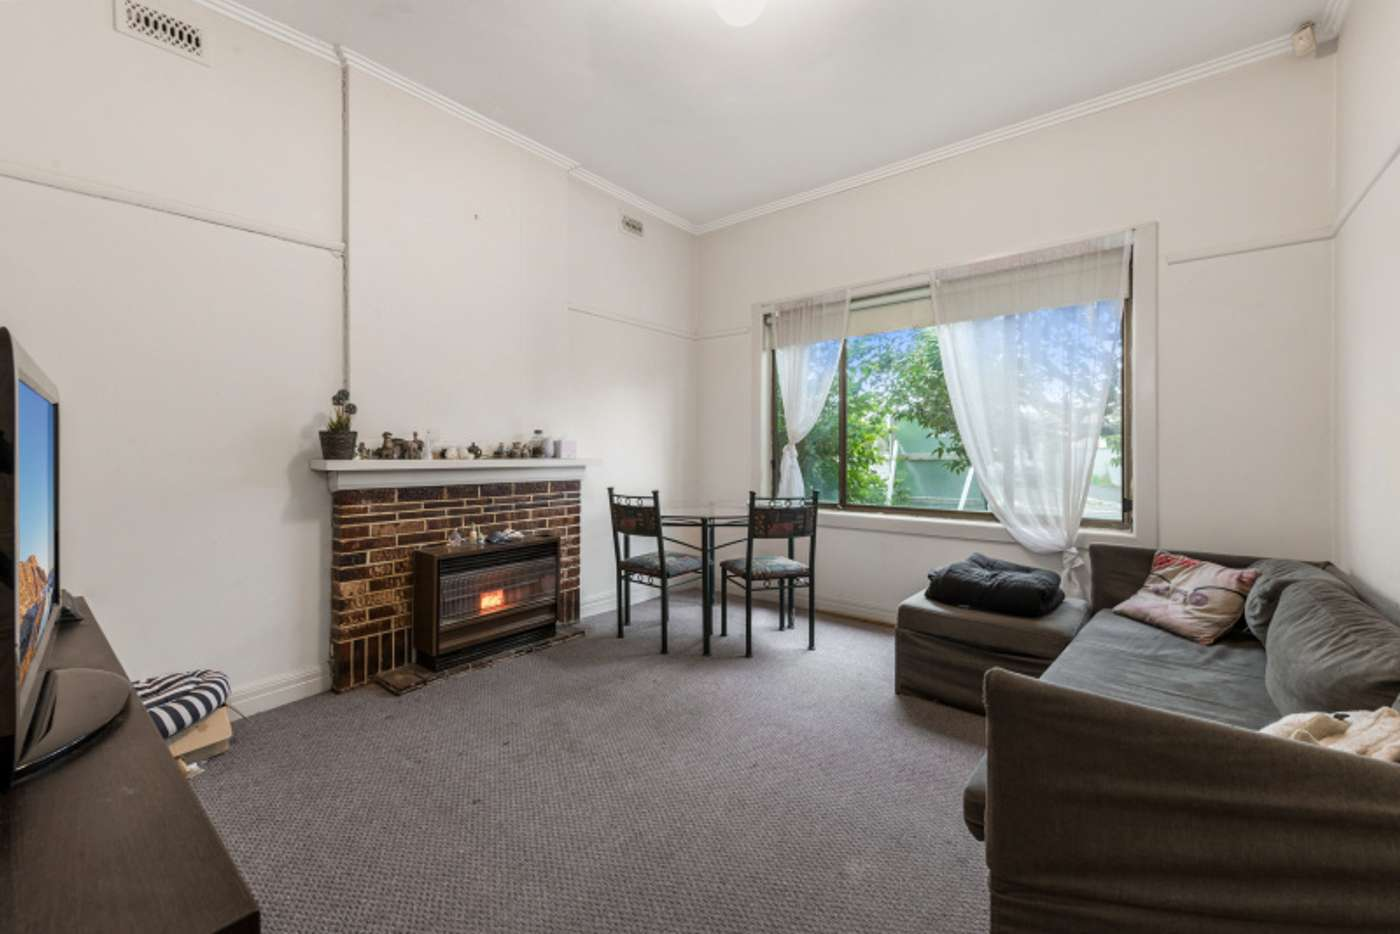 Sixth view of Homely house listing, 56 John Street, Williamstown VIC 3016